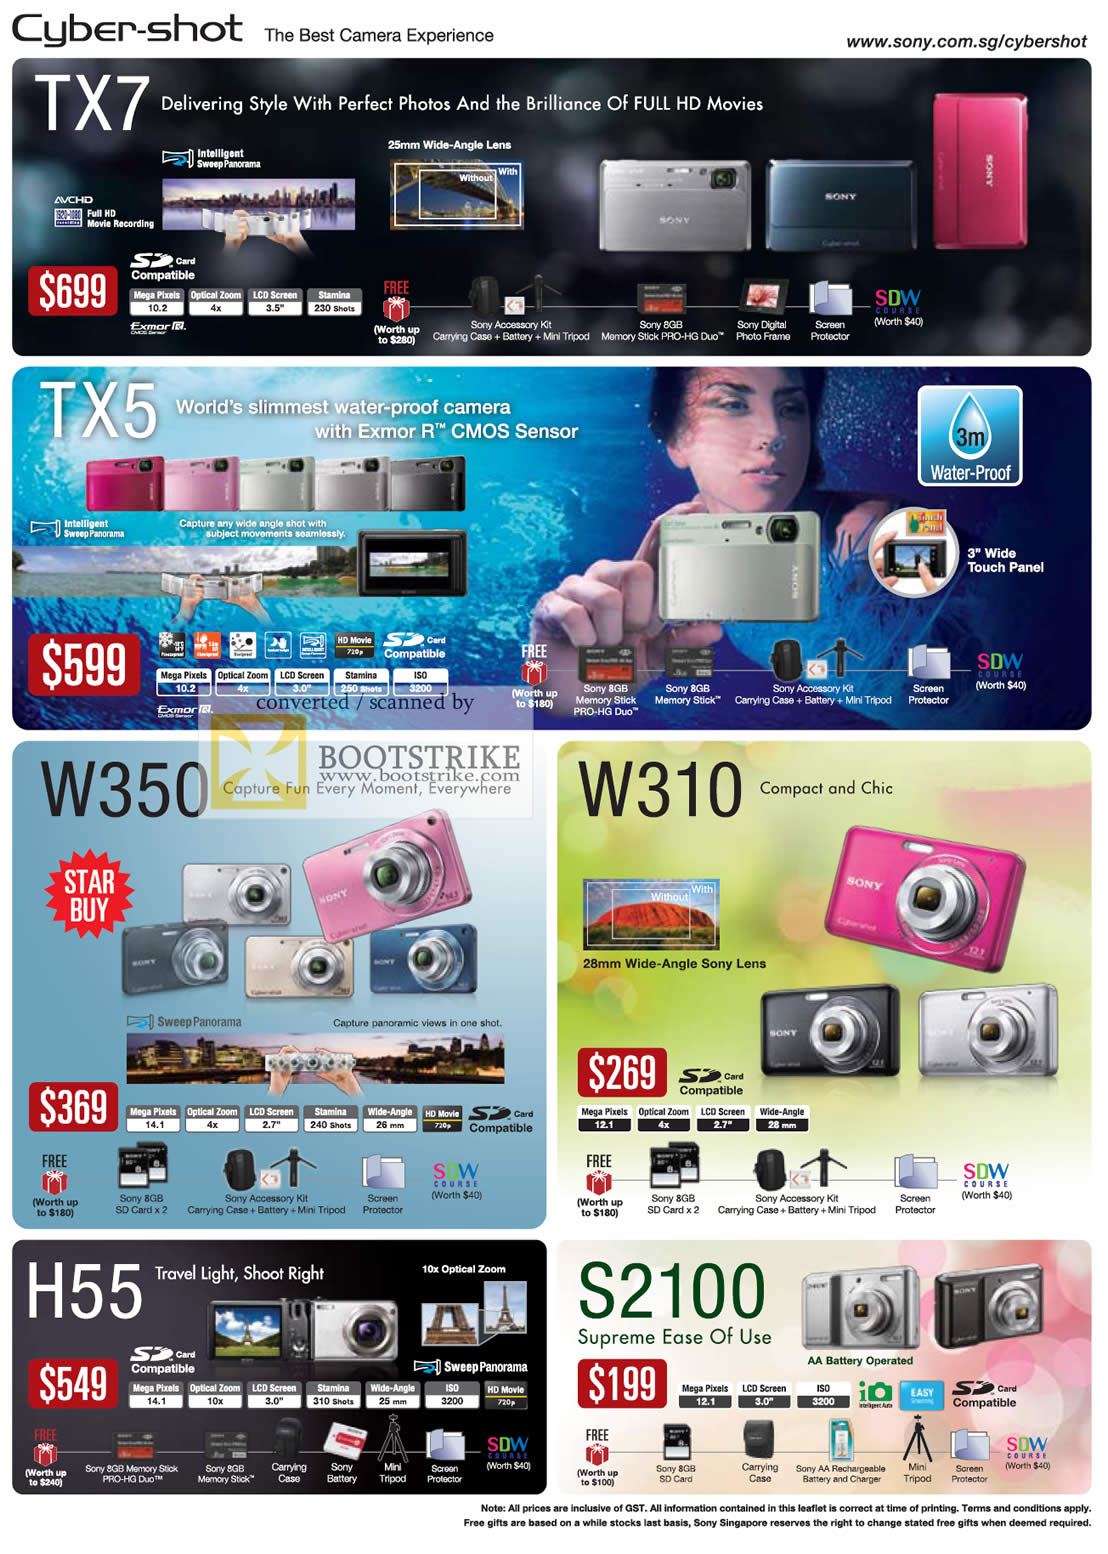 PC Show 2010 price list image brochure of Sony Cybershot Digital Cameras TX7 TX5 W350 W310 H55 S210